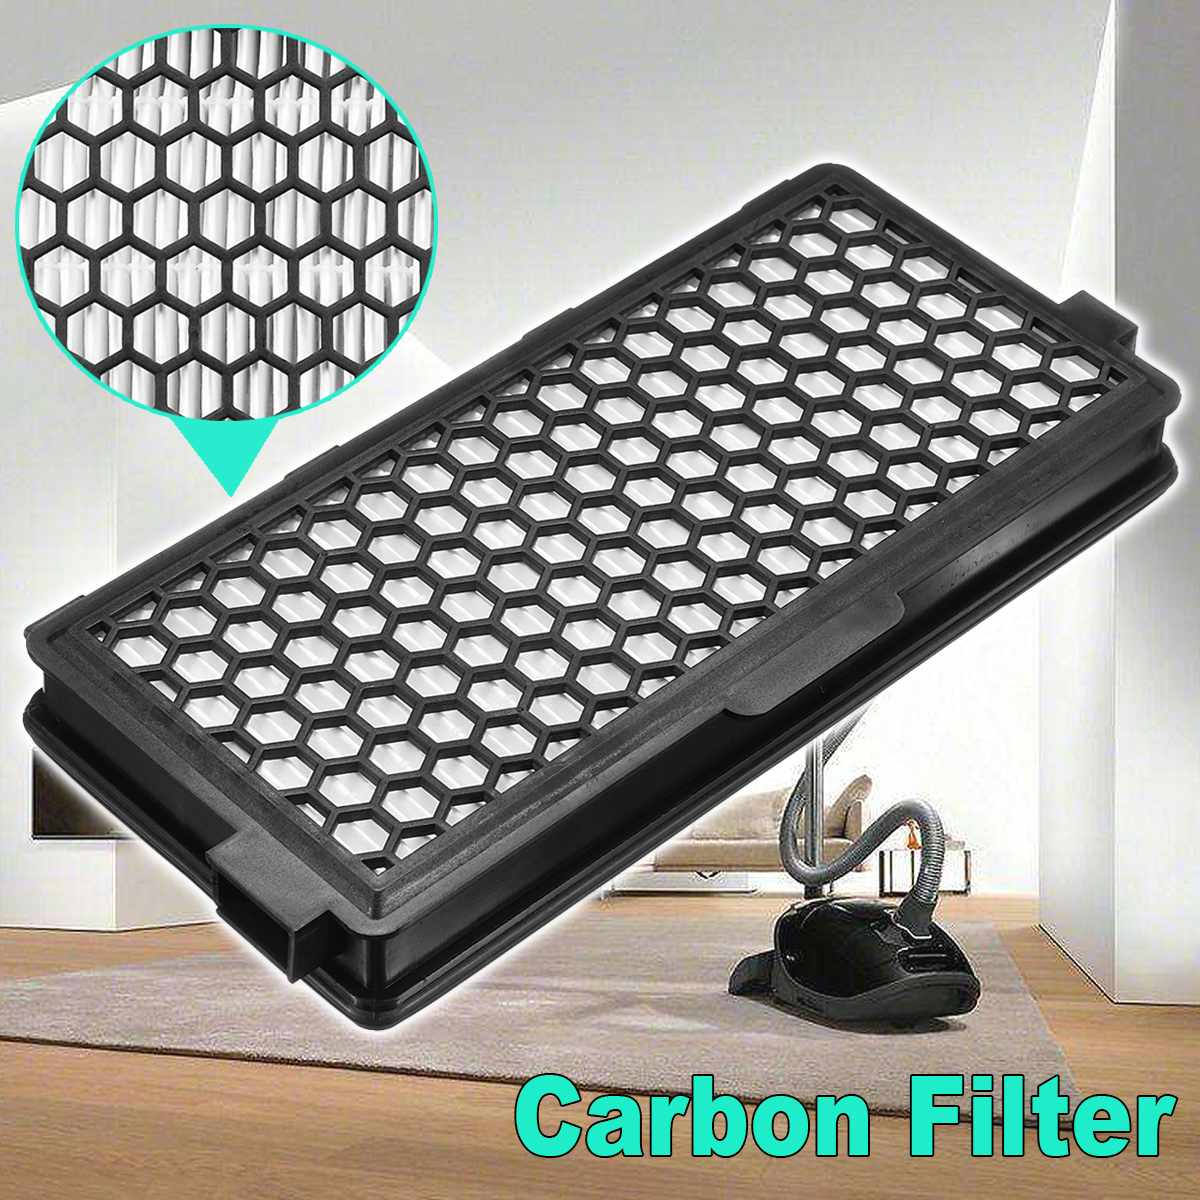 Carbon Filter Replacement for Miele SF-AAC50 Active Air Clean Home Vacuum Cleaner Cat Dog Pet Machine High QualityCarbon Filter Replacement for Miele SF-AAC50 Active Air Clean Home Vacuum Cleaner Cat Dog Pet Machine High Quality